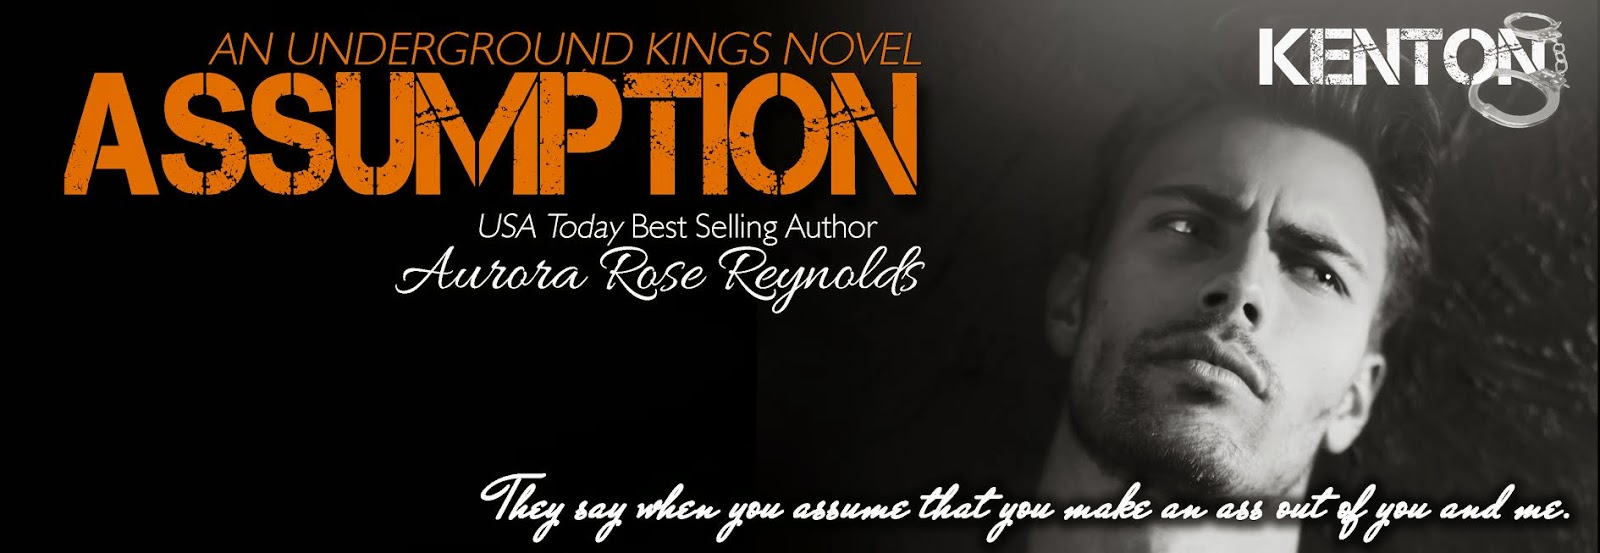 **COVER REVEAL & PROLOGUE** ASSUMPTION (UNDERGROUND KINGS #1) by Aurora Rose Reynolds